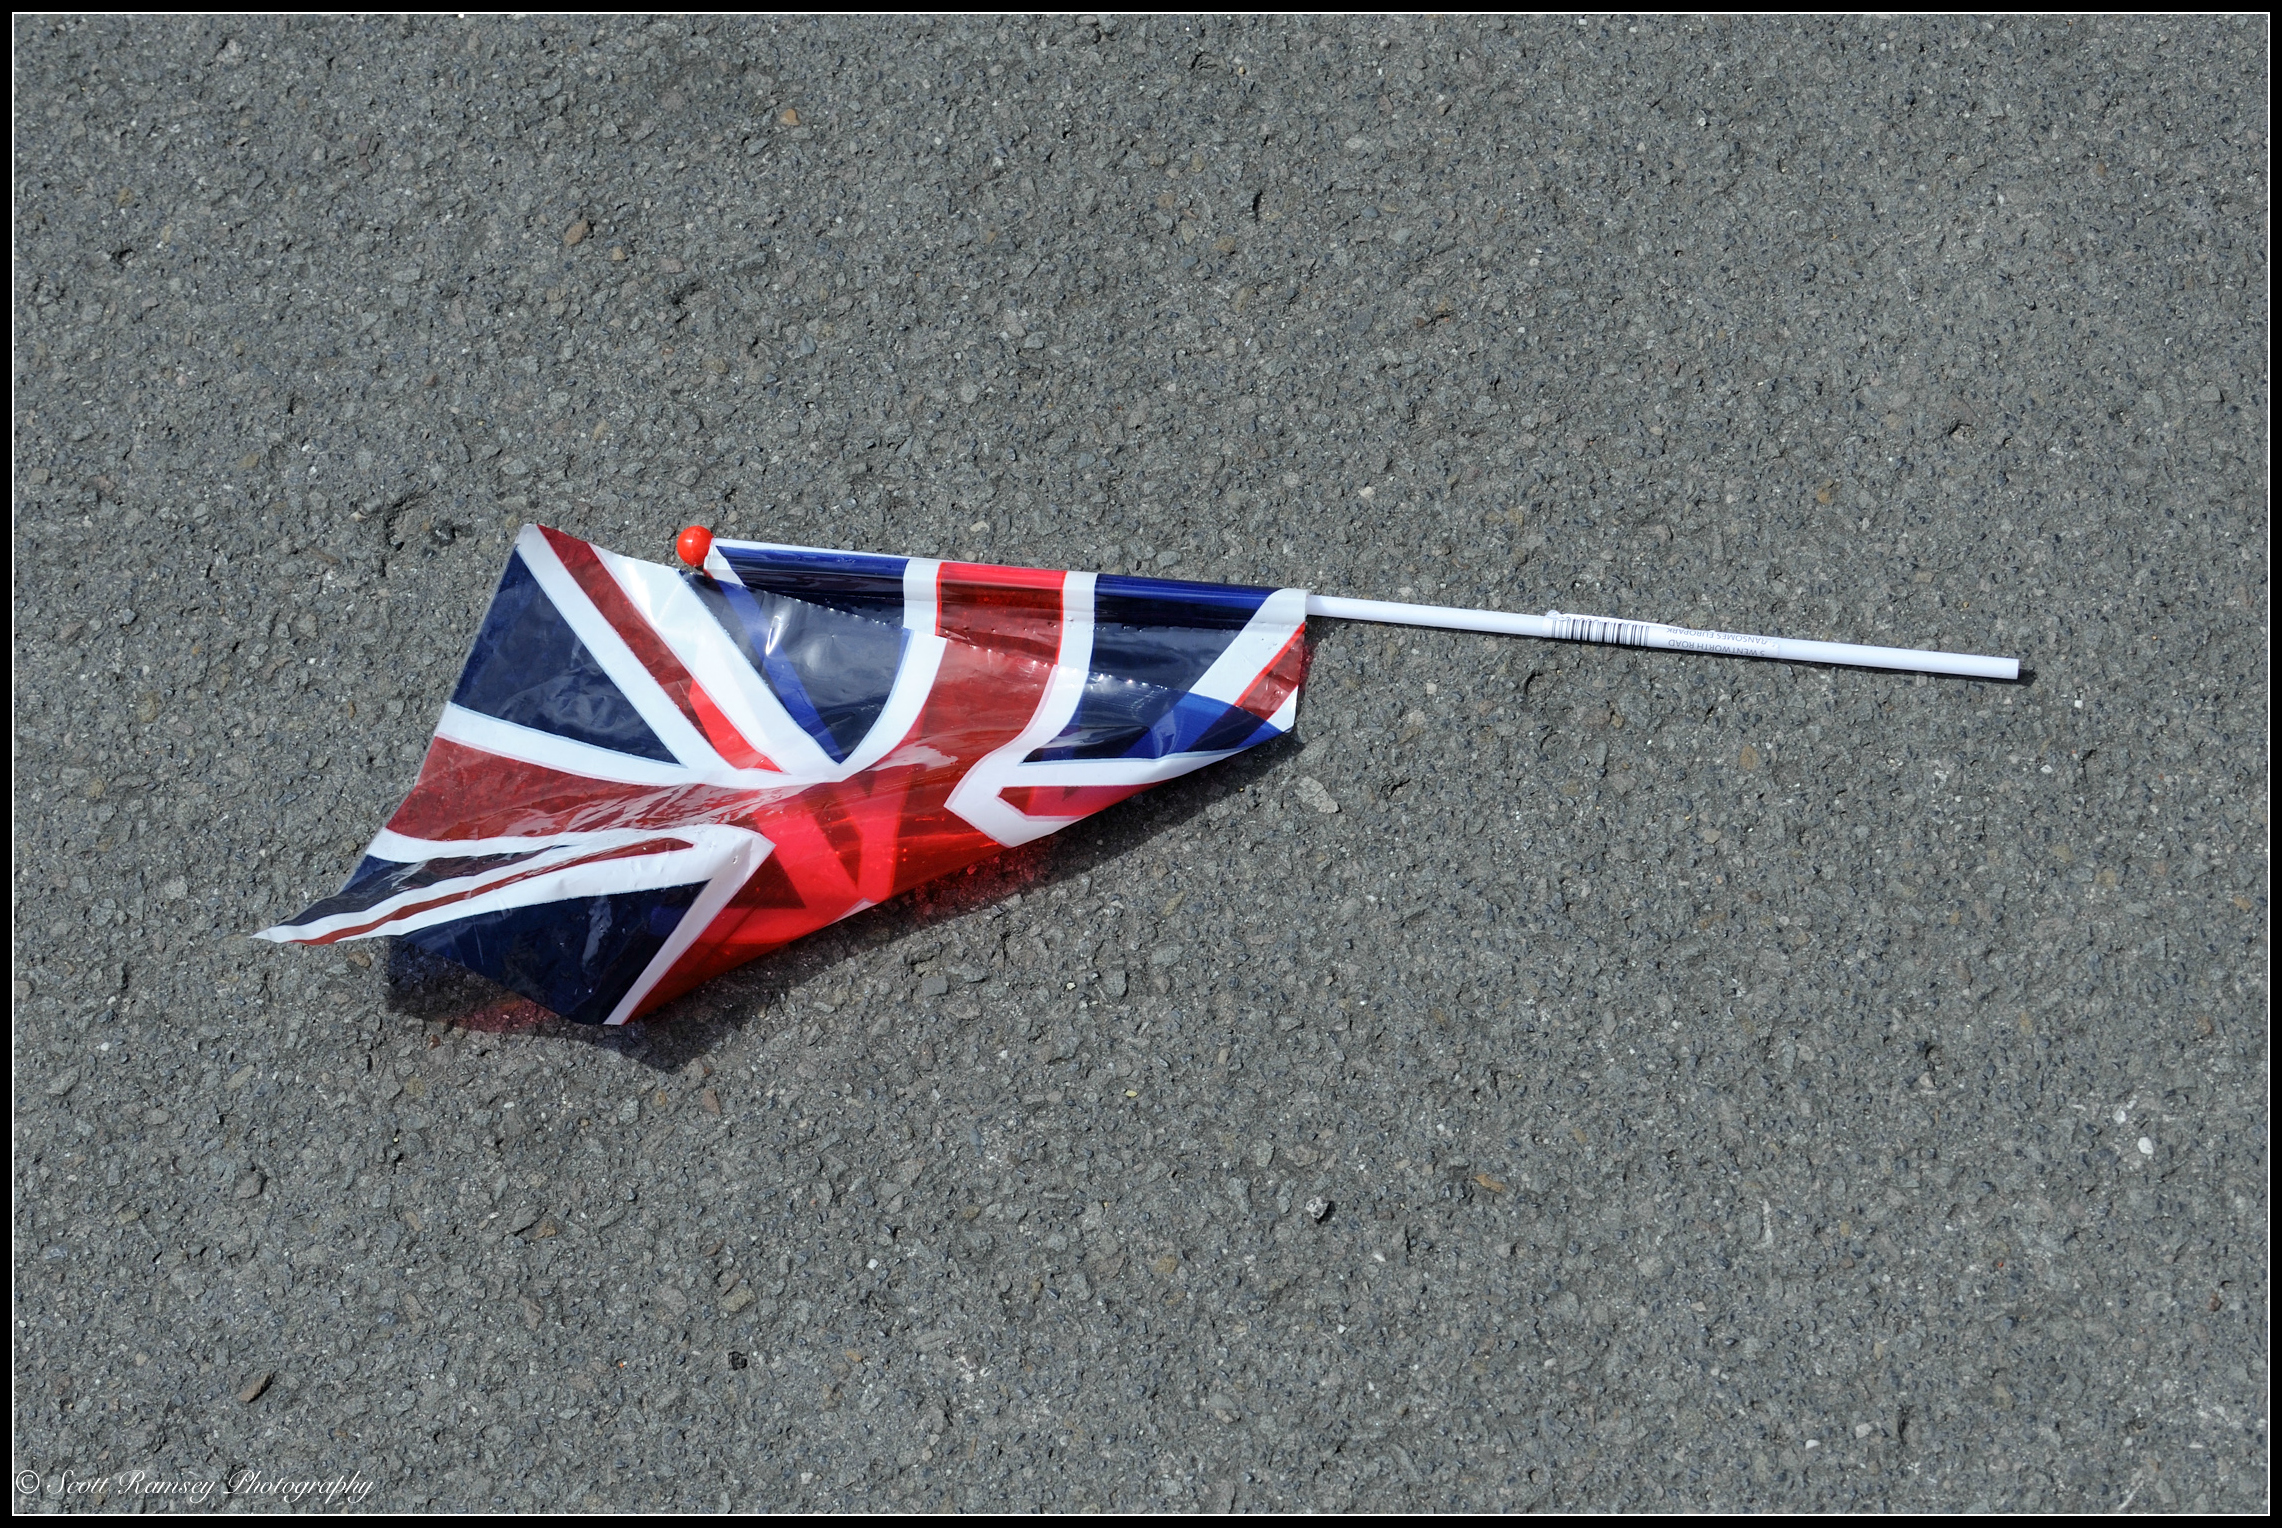 A union jack flag left on the road during a VE Day street party in Southsea, UK. © Scott Ramsey Photography.